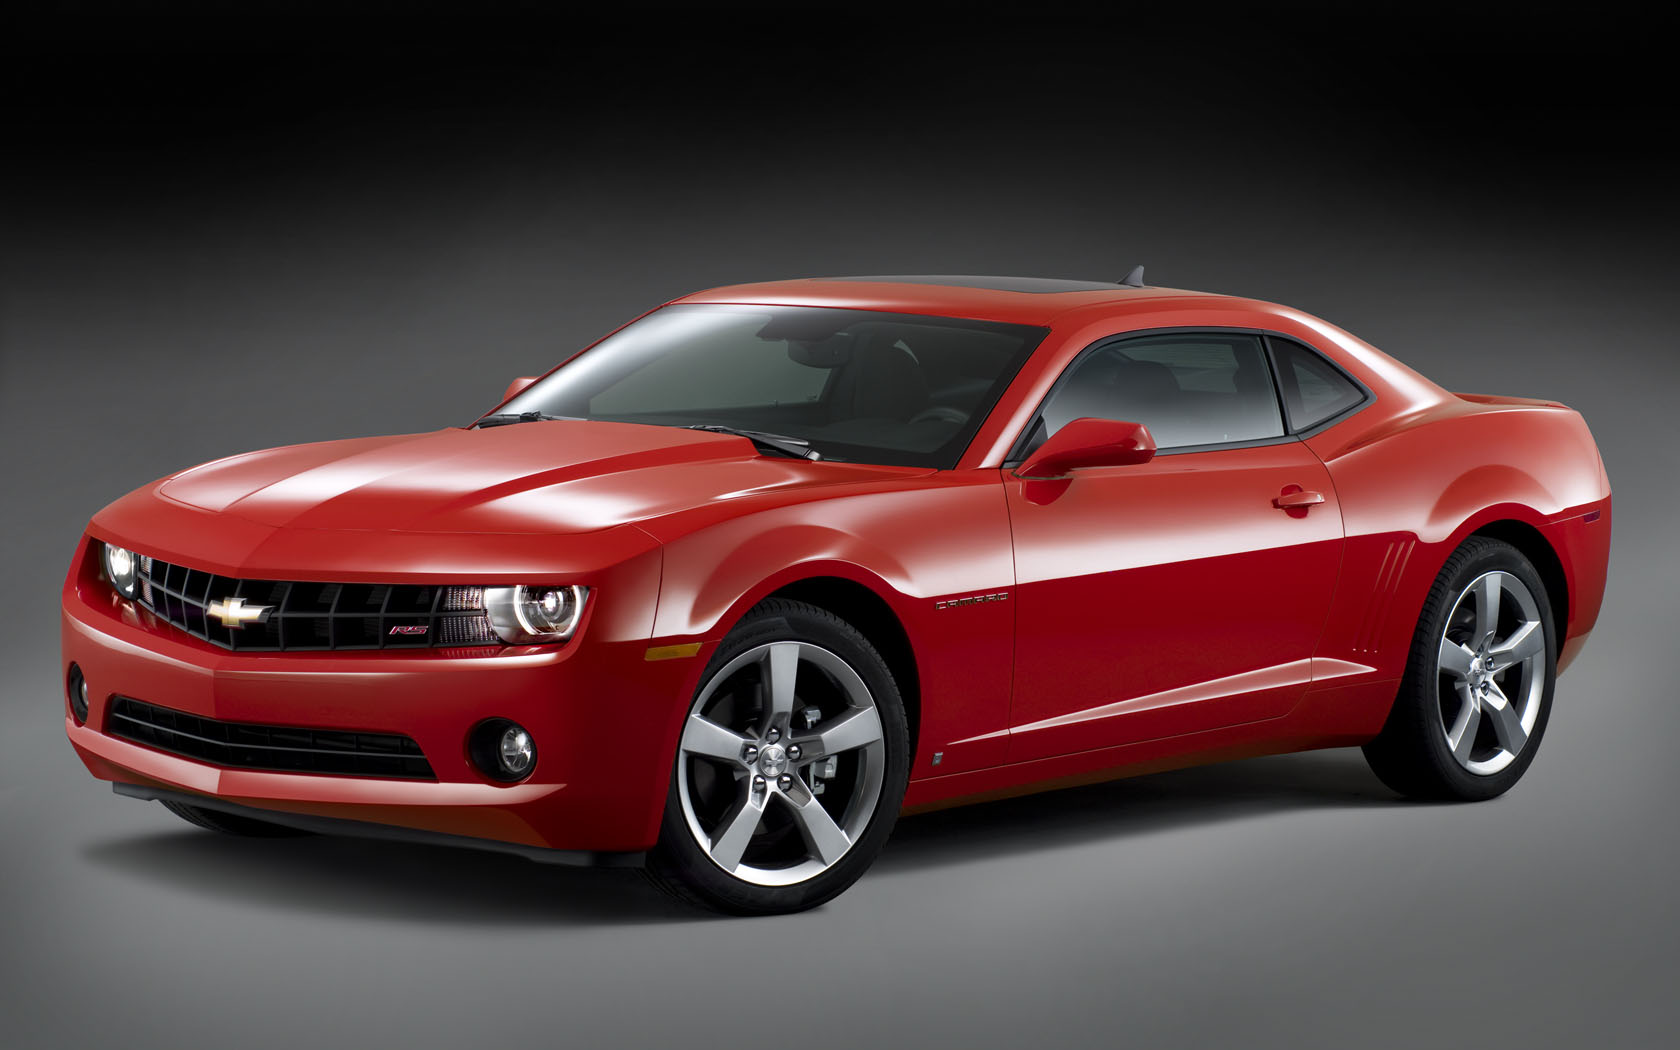 Chevy camaro hd wallpapers Red Chevy Camaro 1680x1050